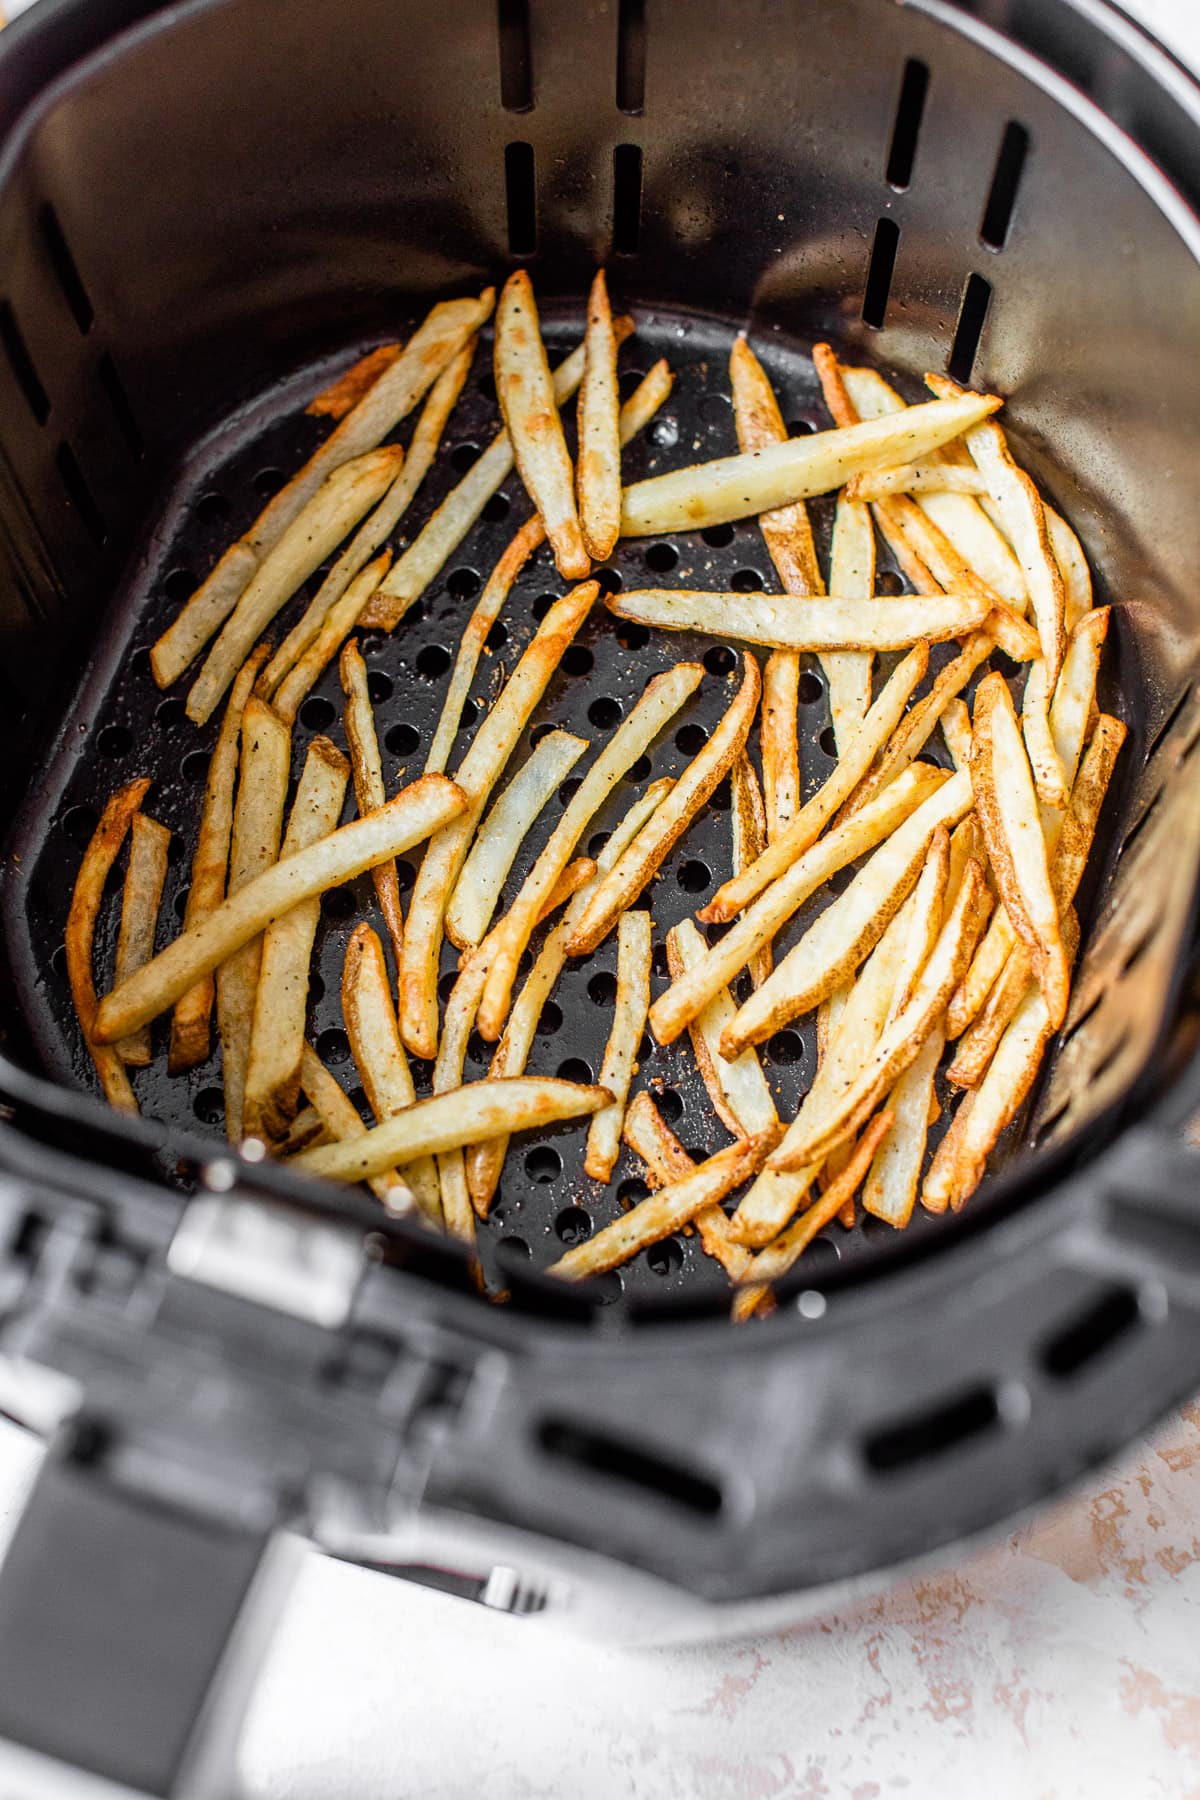 French fries in an air fryer